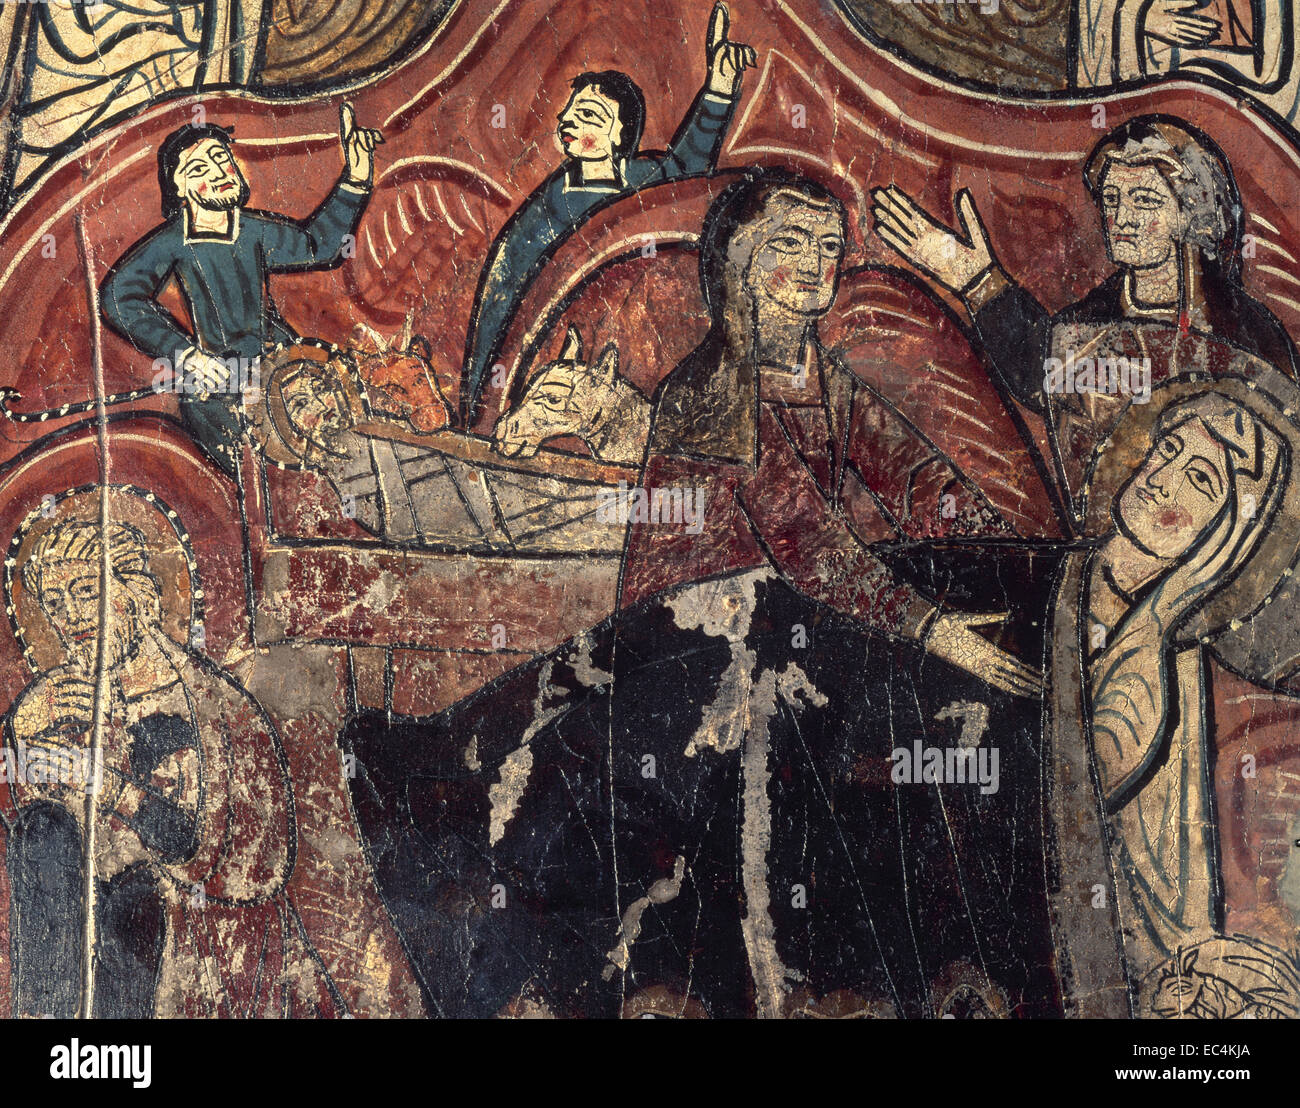 Romanesque. Spain. Aragon. Nativity. Altar frontal of St. Mary's church. Iguacel. Tempera on wood. 12th century. - Stock Image